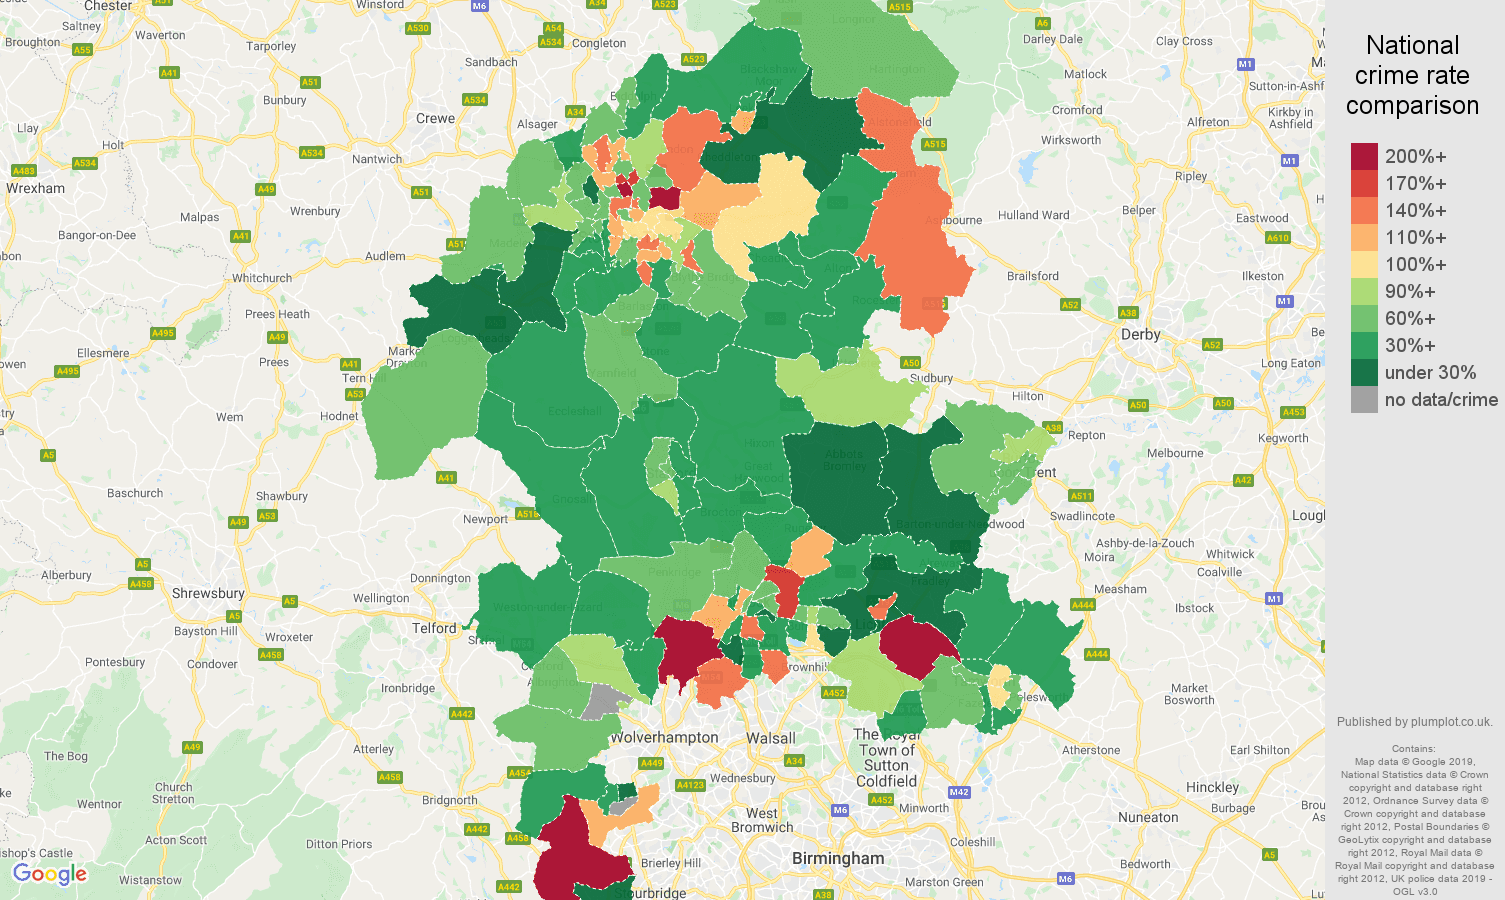 Staffordshire other crime rate comparison map